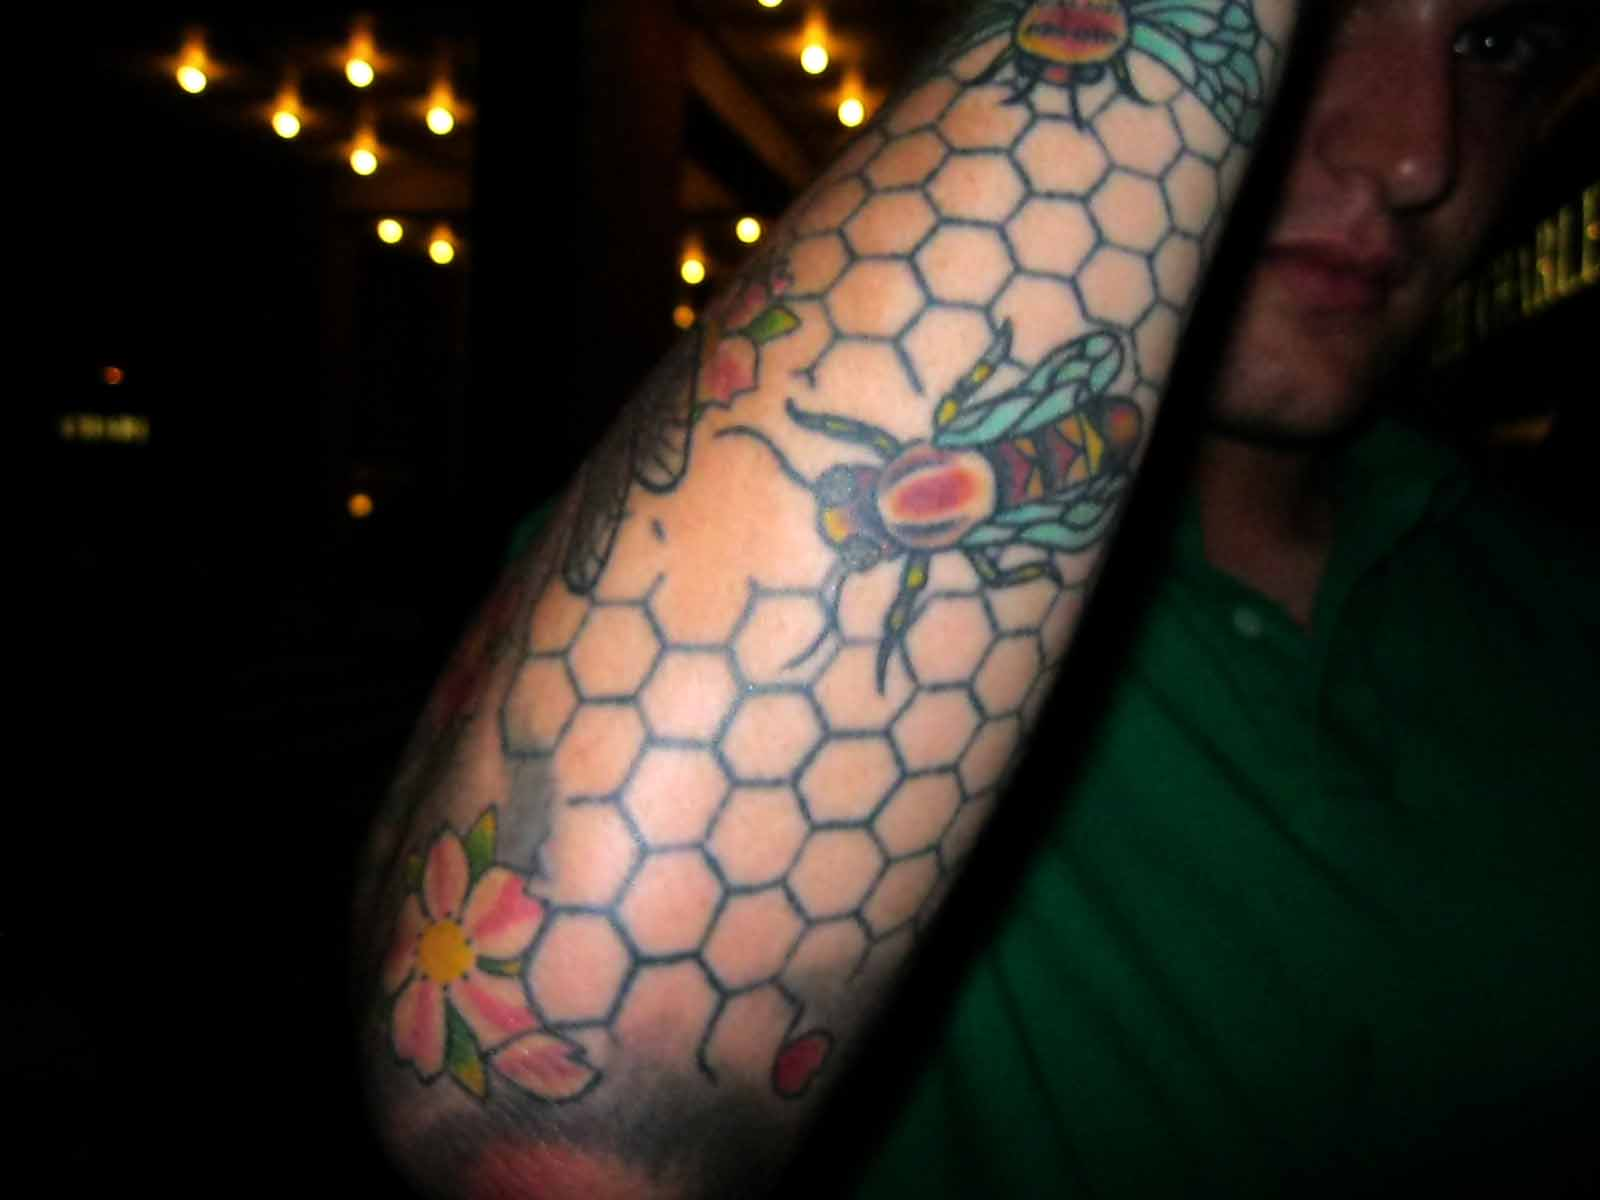 Awesome Bee Tattoo On Guy's Arm